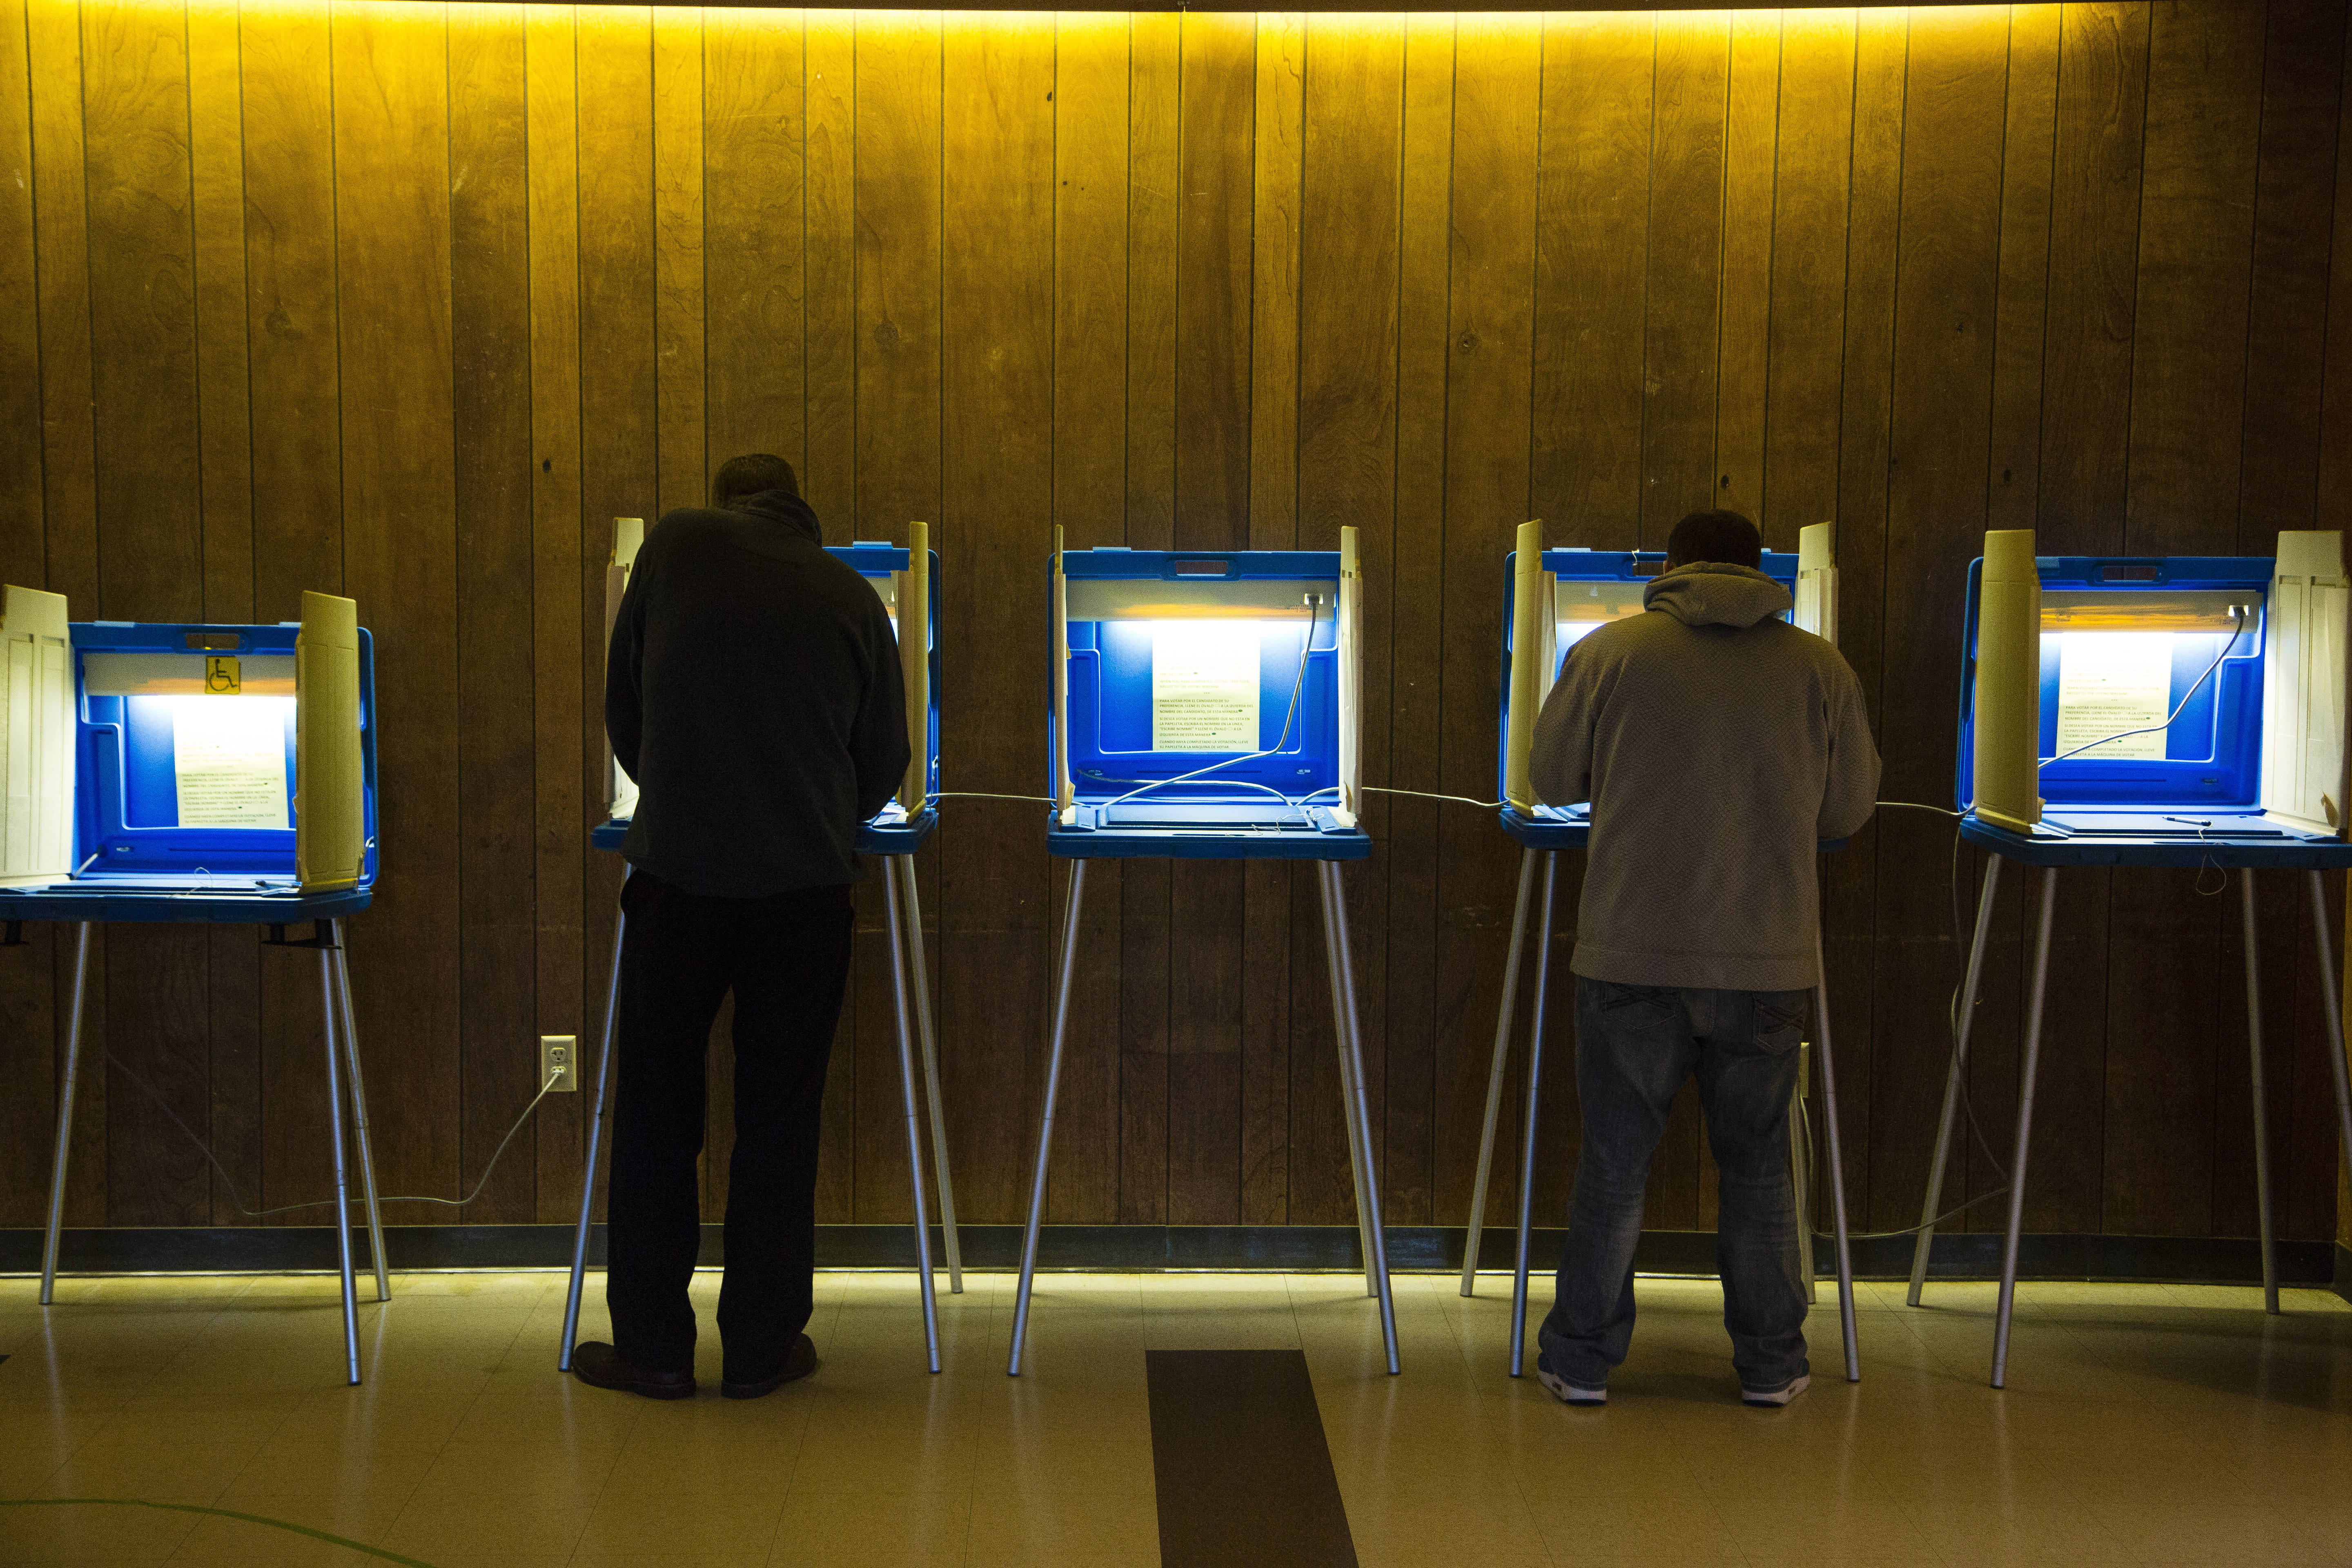 Voters cast their ballot in the national election at Cannon Pavilion on Nov. 8, 2016 in Milwaukee, Wisconsin.